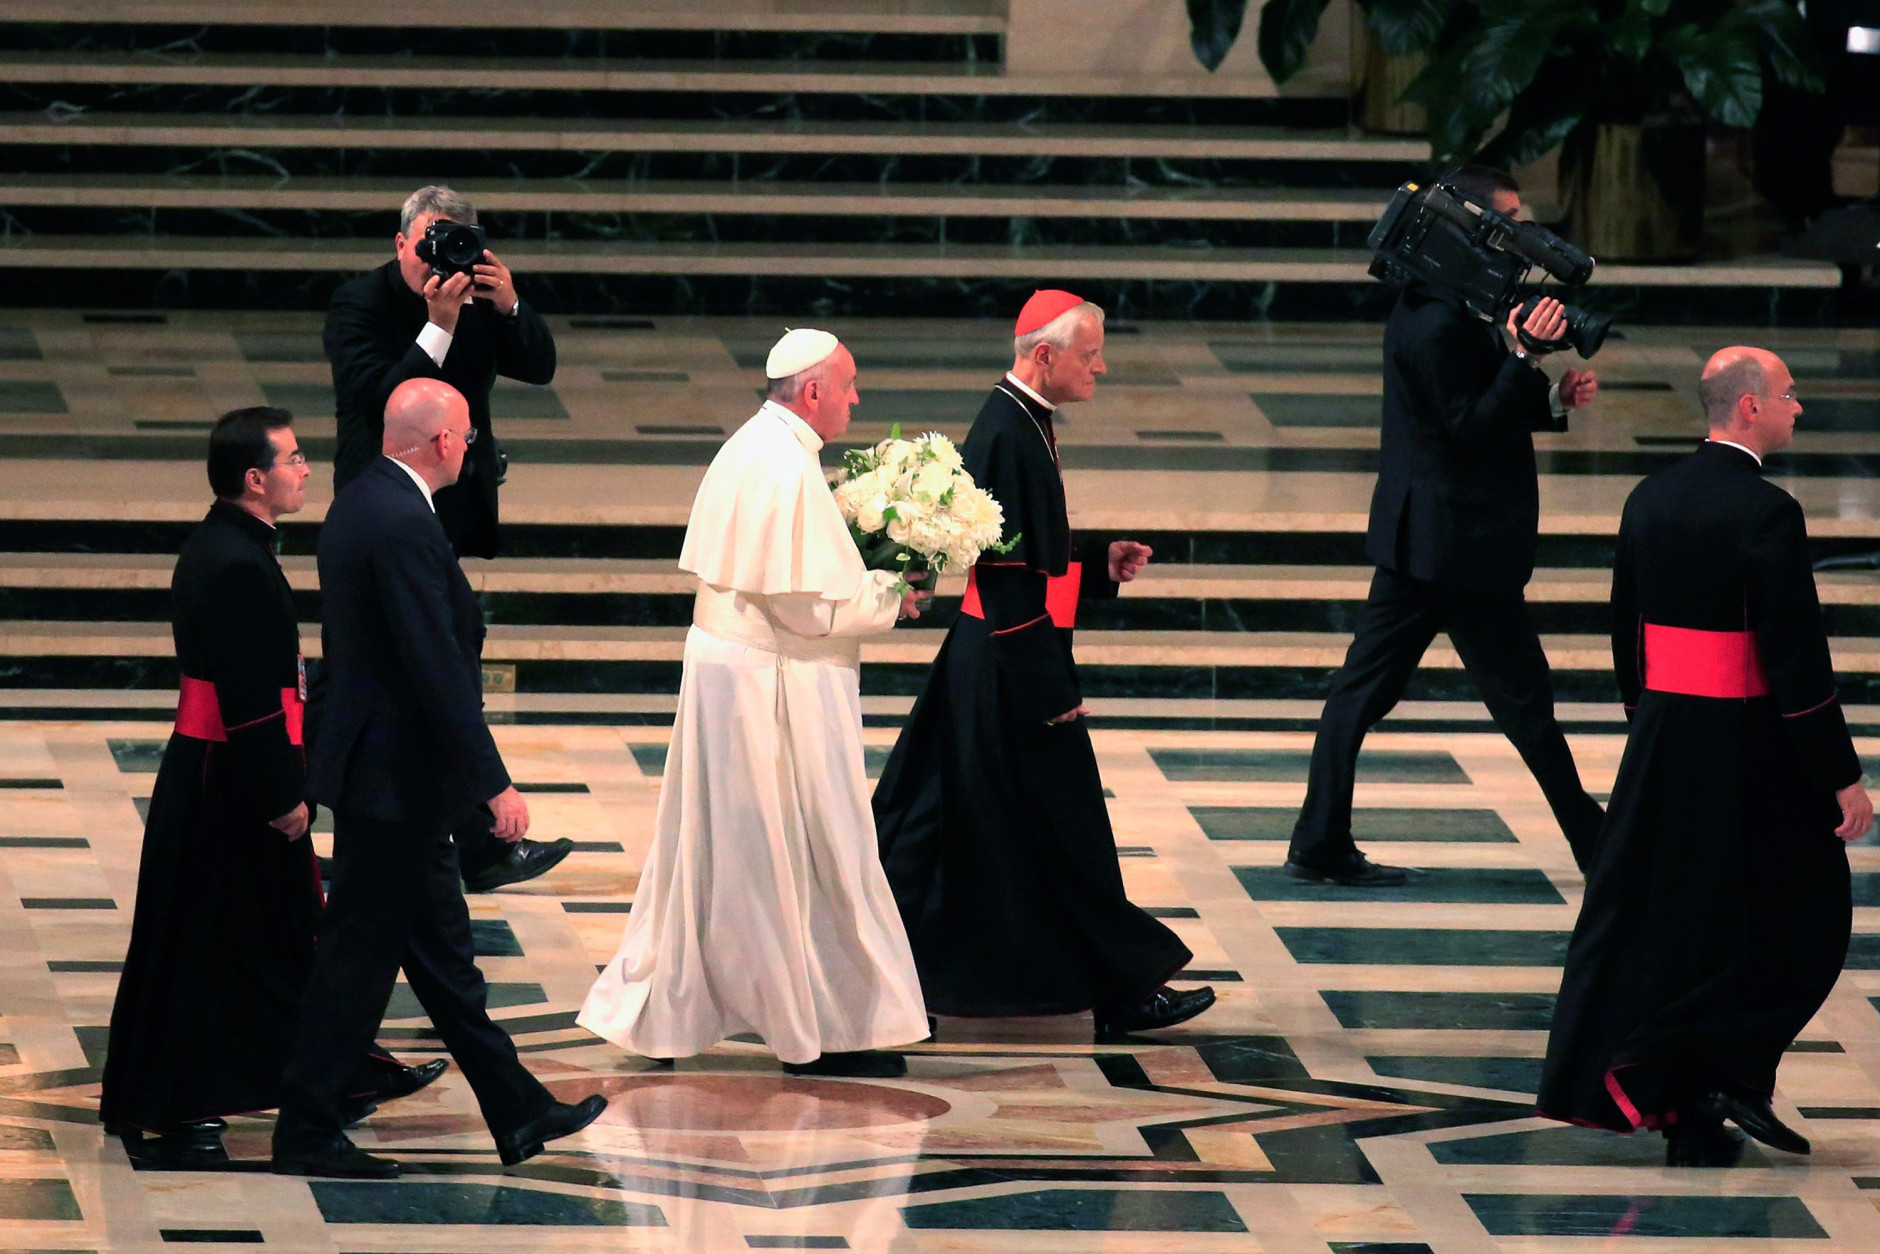 WASHINGTON, DC - SEPTEMBER 23:  Pope Francis (3L) arrives for the canonization Mass for Junipero Serra at the Basilica of the National Shrine of the Immaculate Conception on September 23, 2015 in Washington, DC. Junipero Serra was an 18th century Spanish Franciscan friar who founded a mission in Baja, California to bring Christianity to the indigenous population. This is the first-ever canonization by a Pope on U.S. soil. Pope Francis is on a multi-city tour on his first visit to the U.S. as Pope. (Photo by Rob Carr/Getty Images)